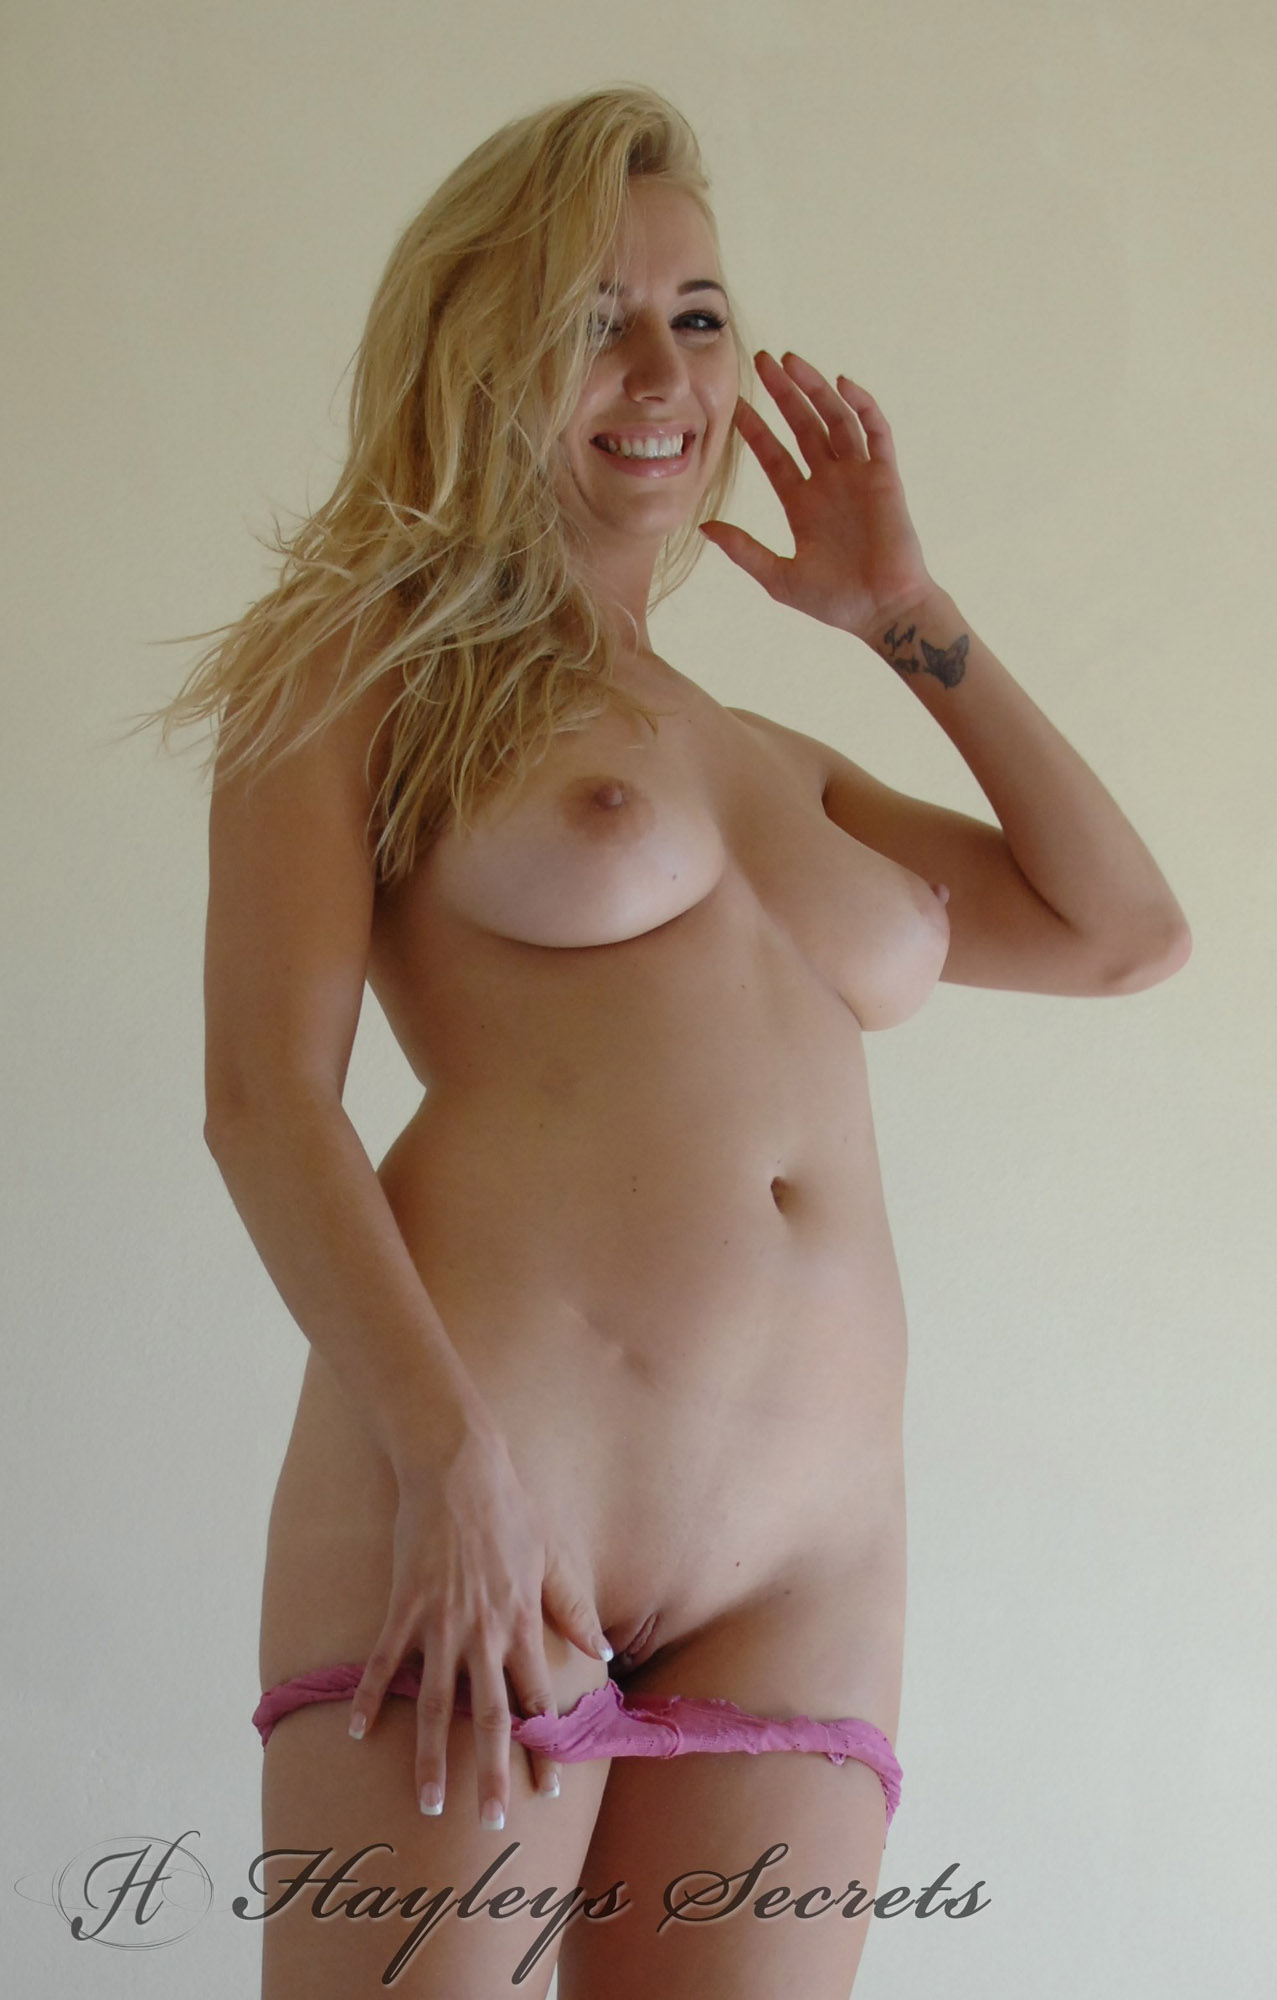 Click here to see more Hayley Marie @ Her Website